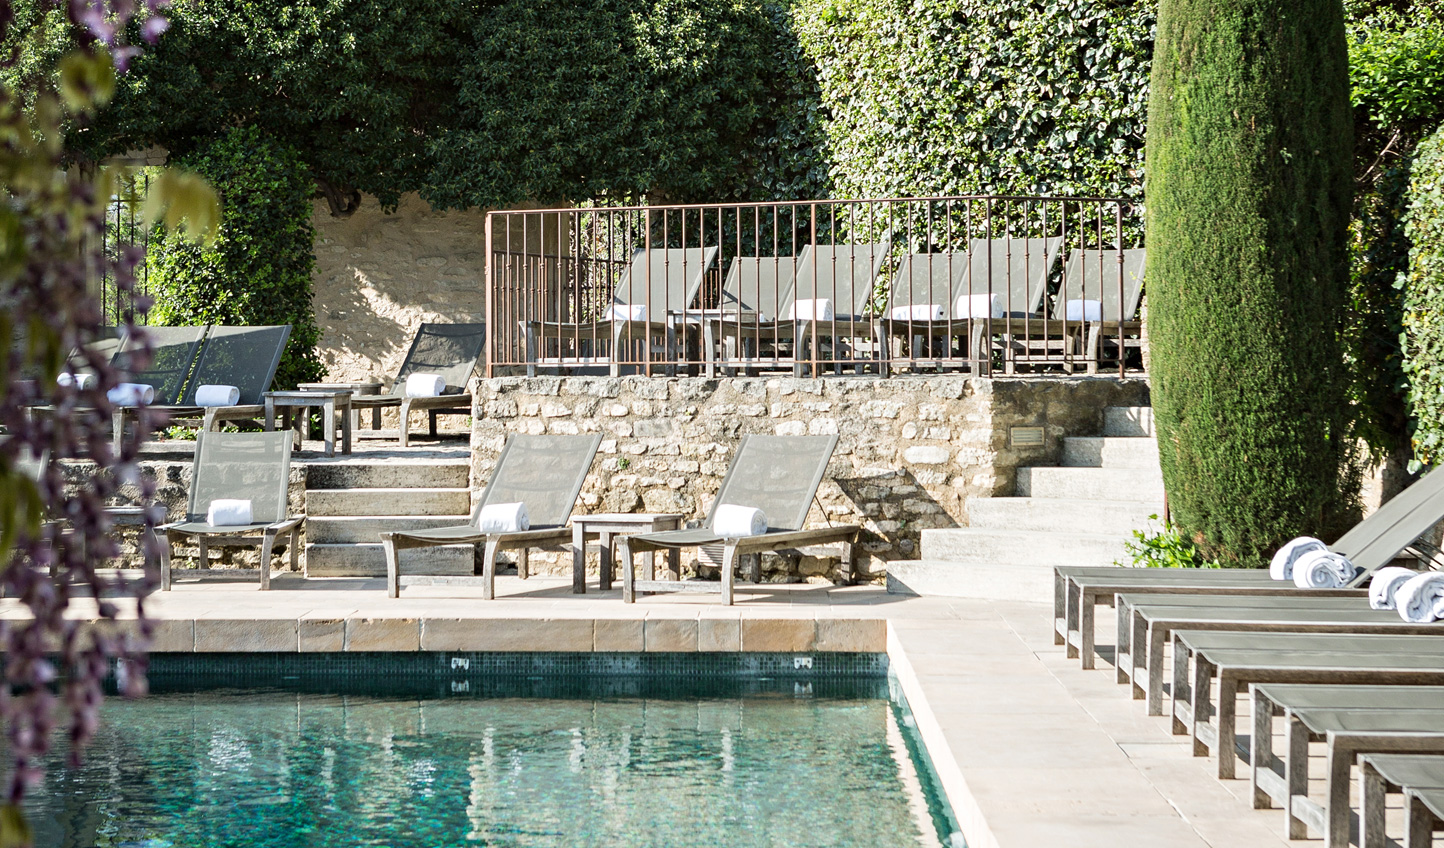 Spend afternoons relaxing by the pool at Crillon le Brave